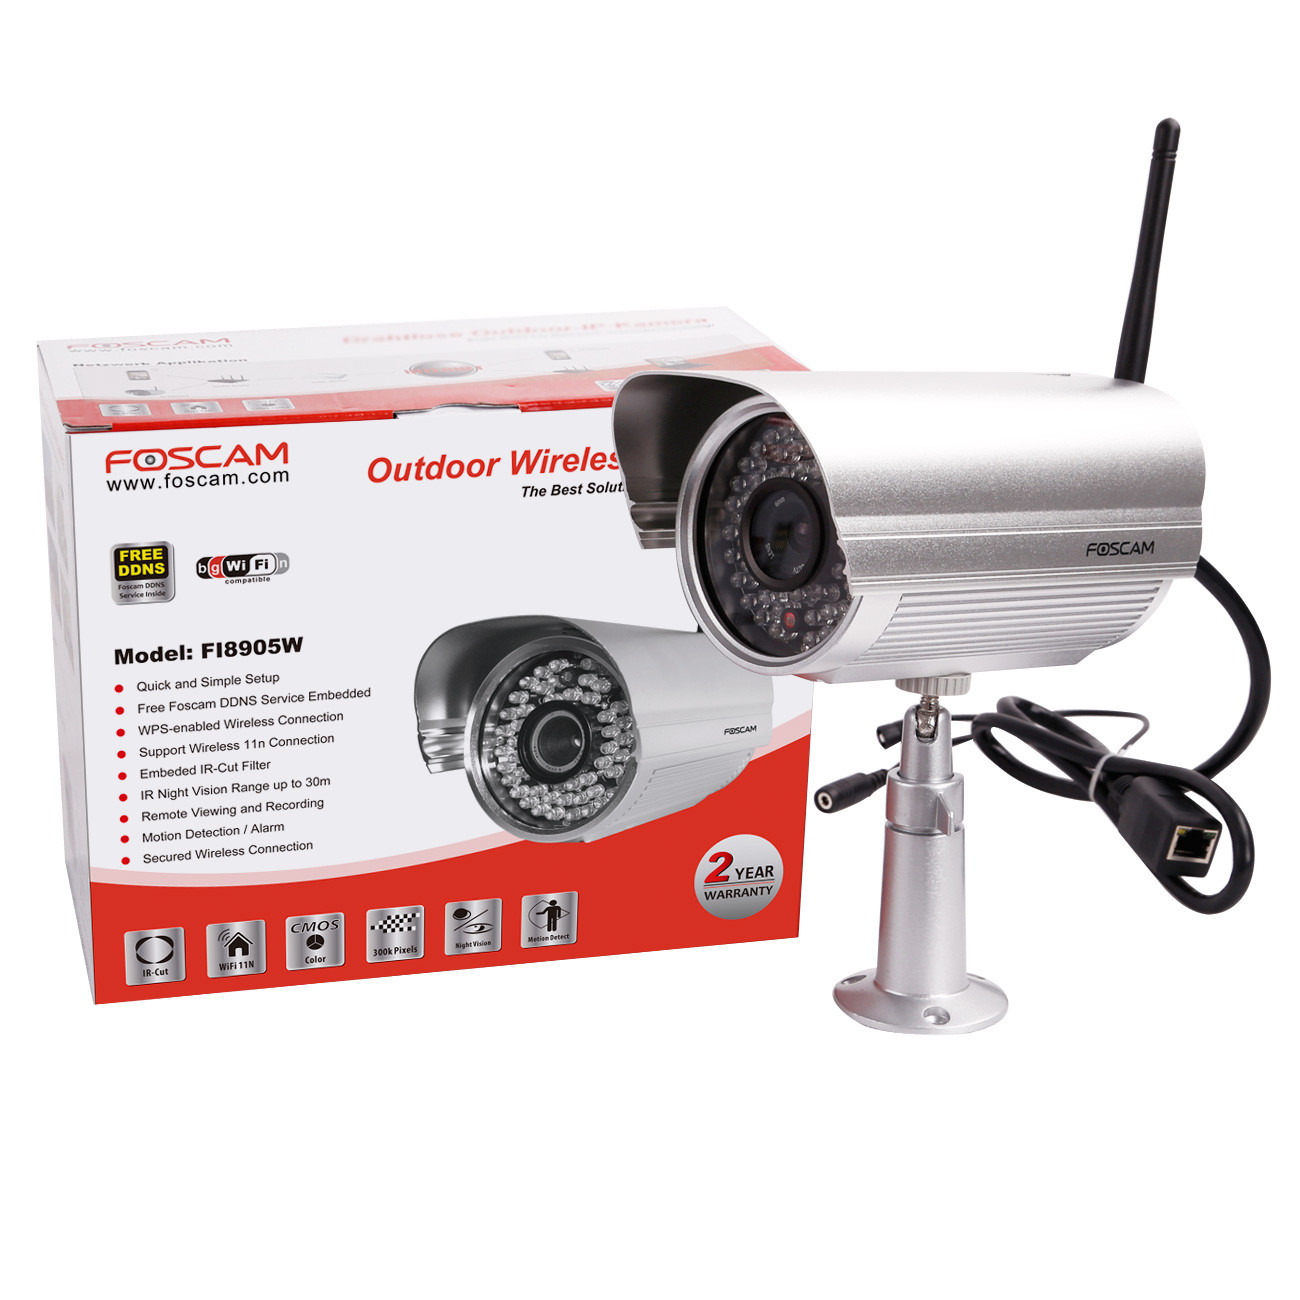 FOSCAM FI8905W IP CAMERA DESCARGAR CONTROLADOR